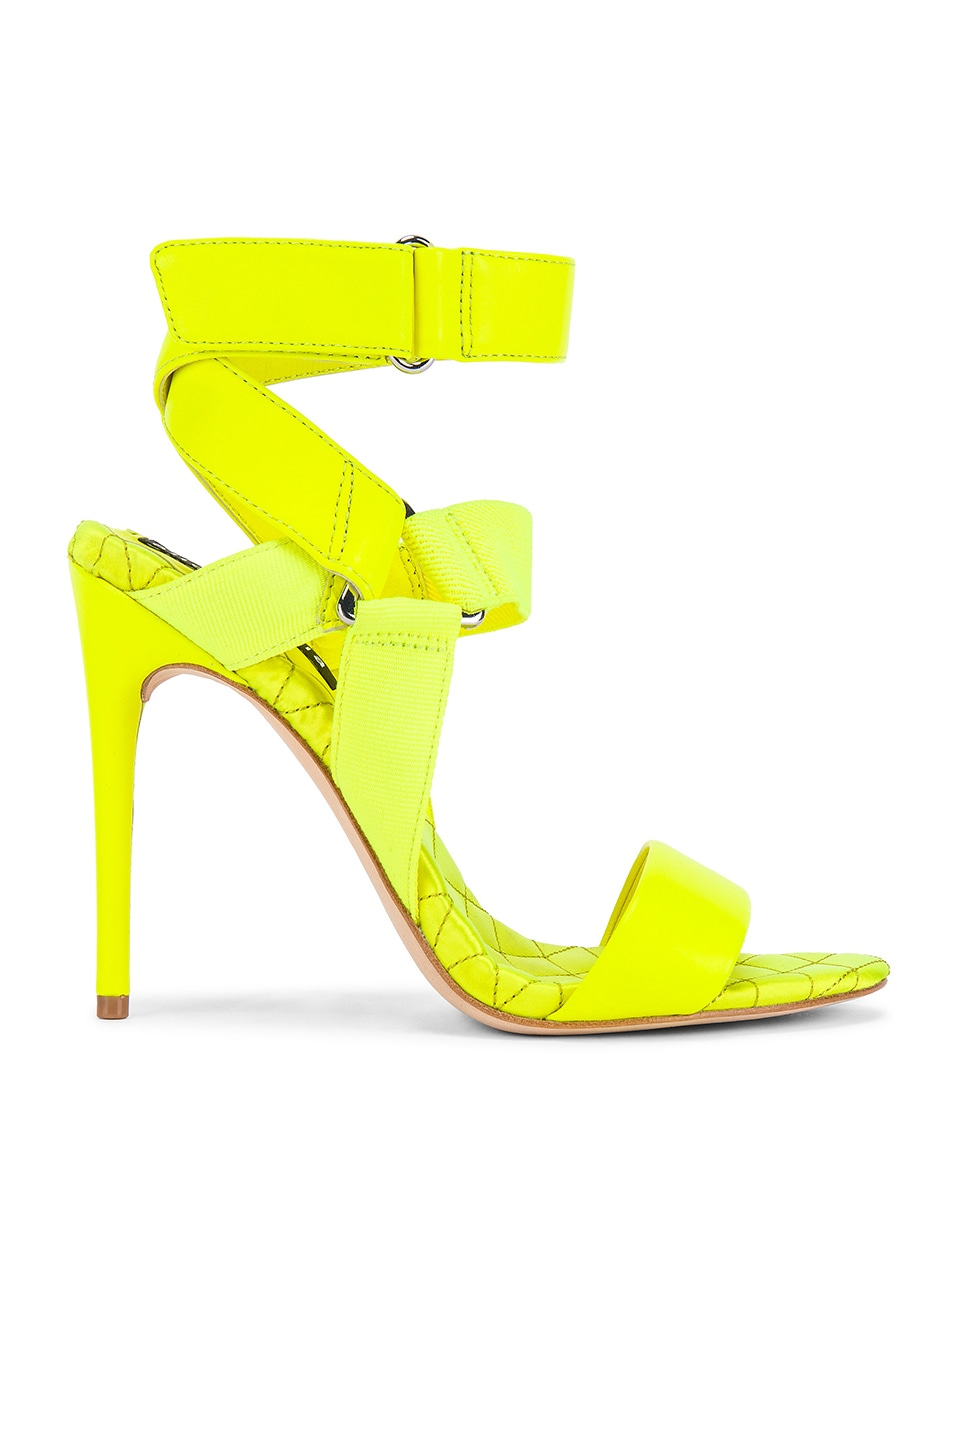 Alice + Olivia Talene Heel in Neon Yellow